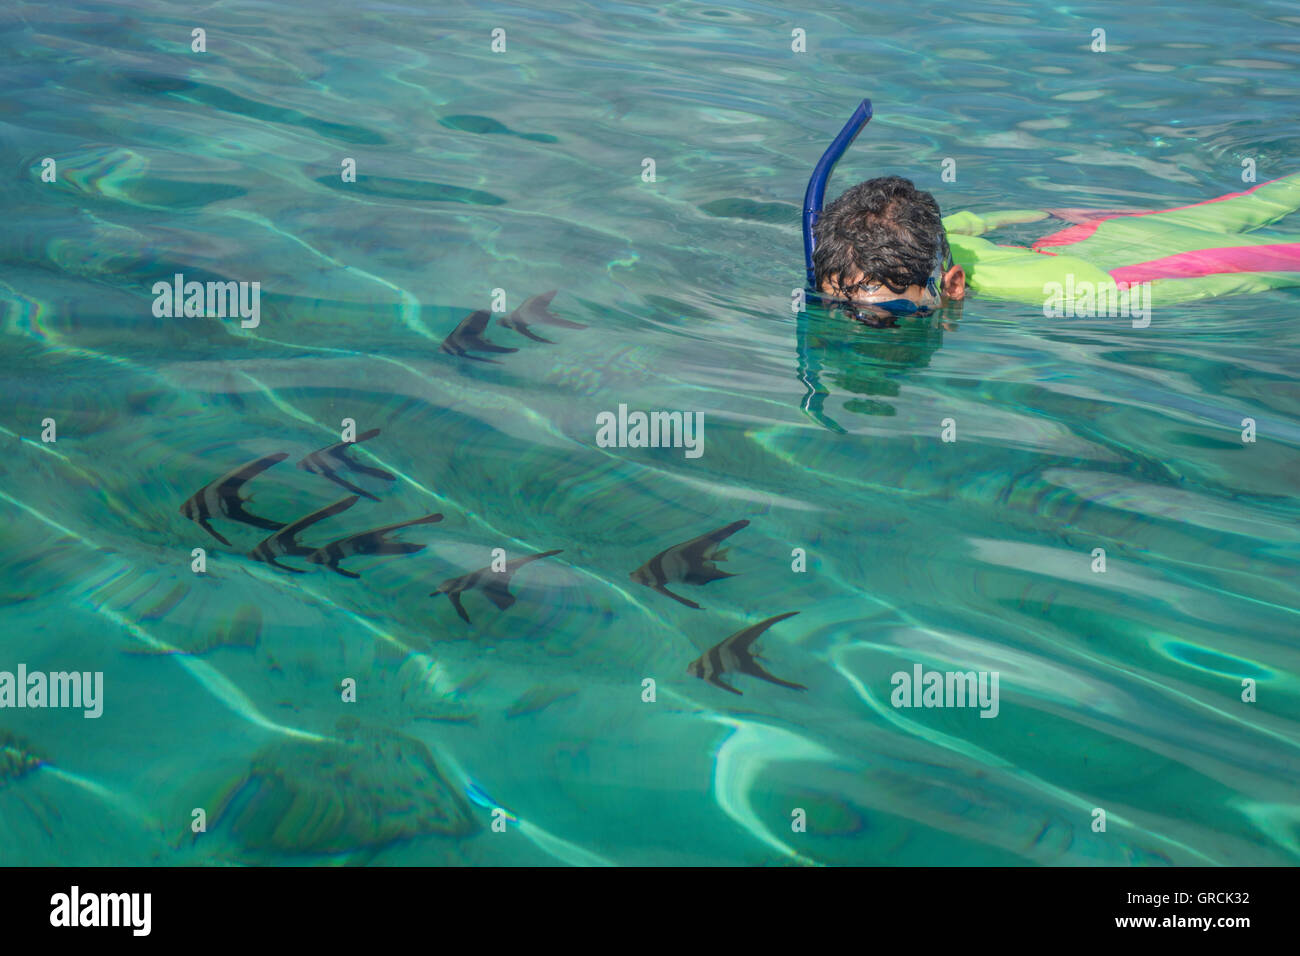 Female Snorkeler In Colorful Divesuit Observing Batfishes In The Shallow Waters Of The Banda Sea - Stock Image